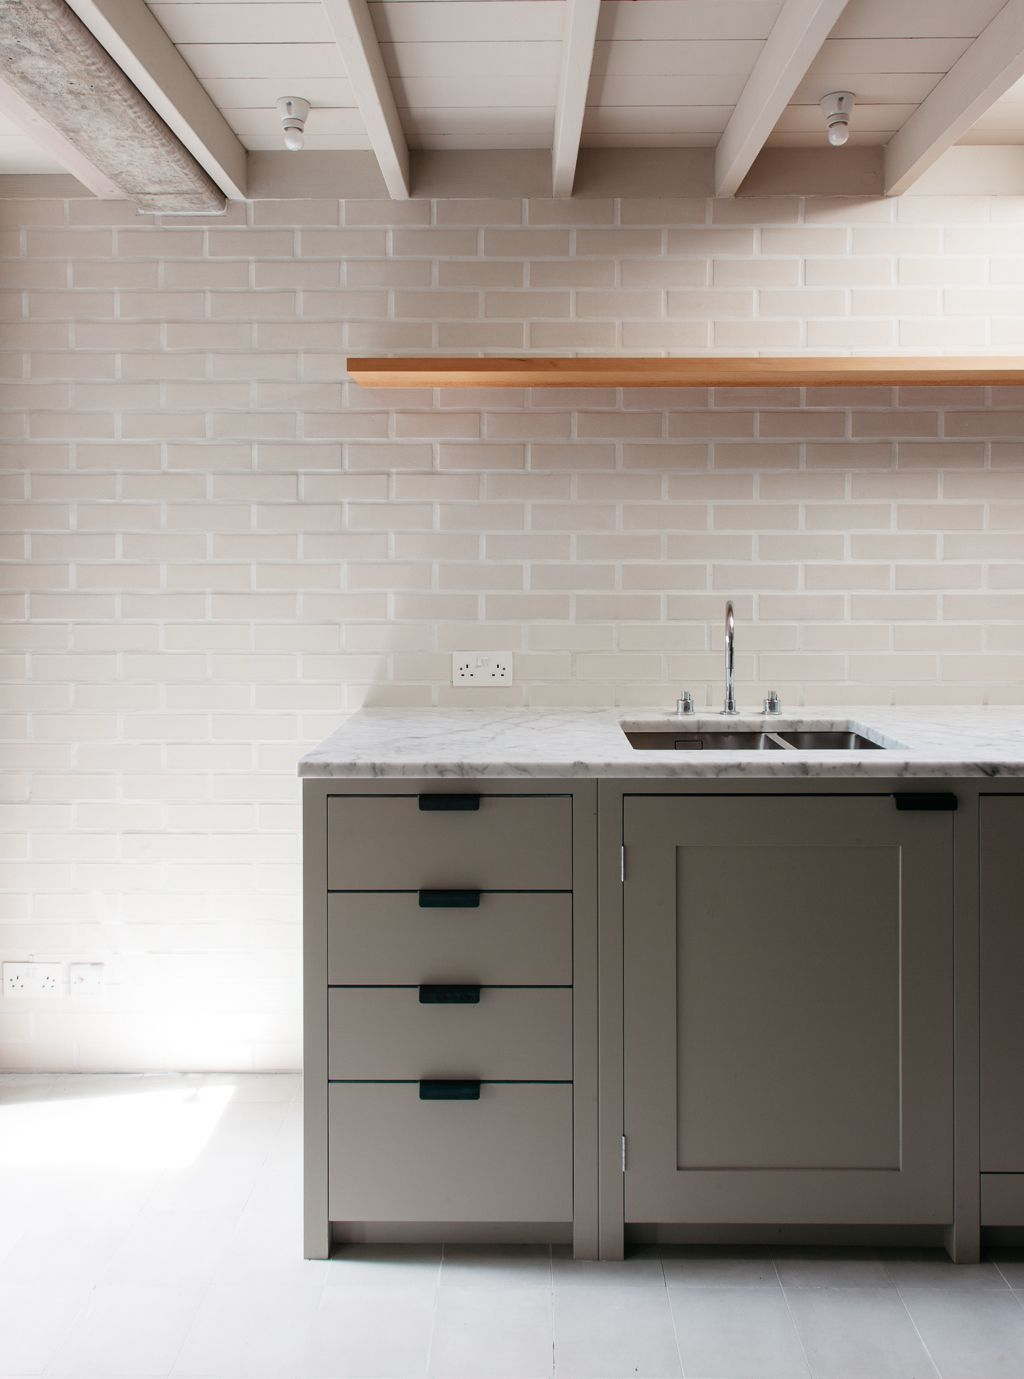 Thameside Townhouse Kitchen Featuring Handcrafted Cabinets